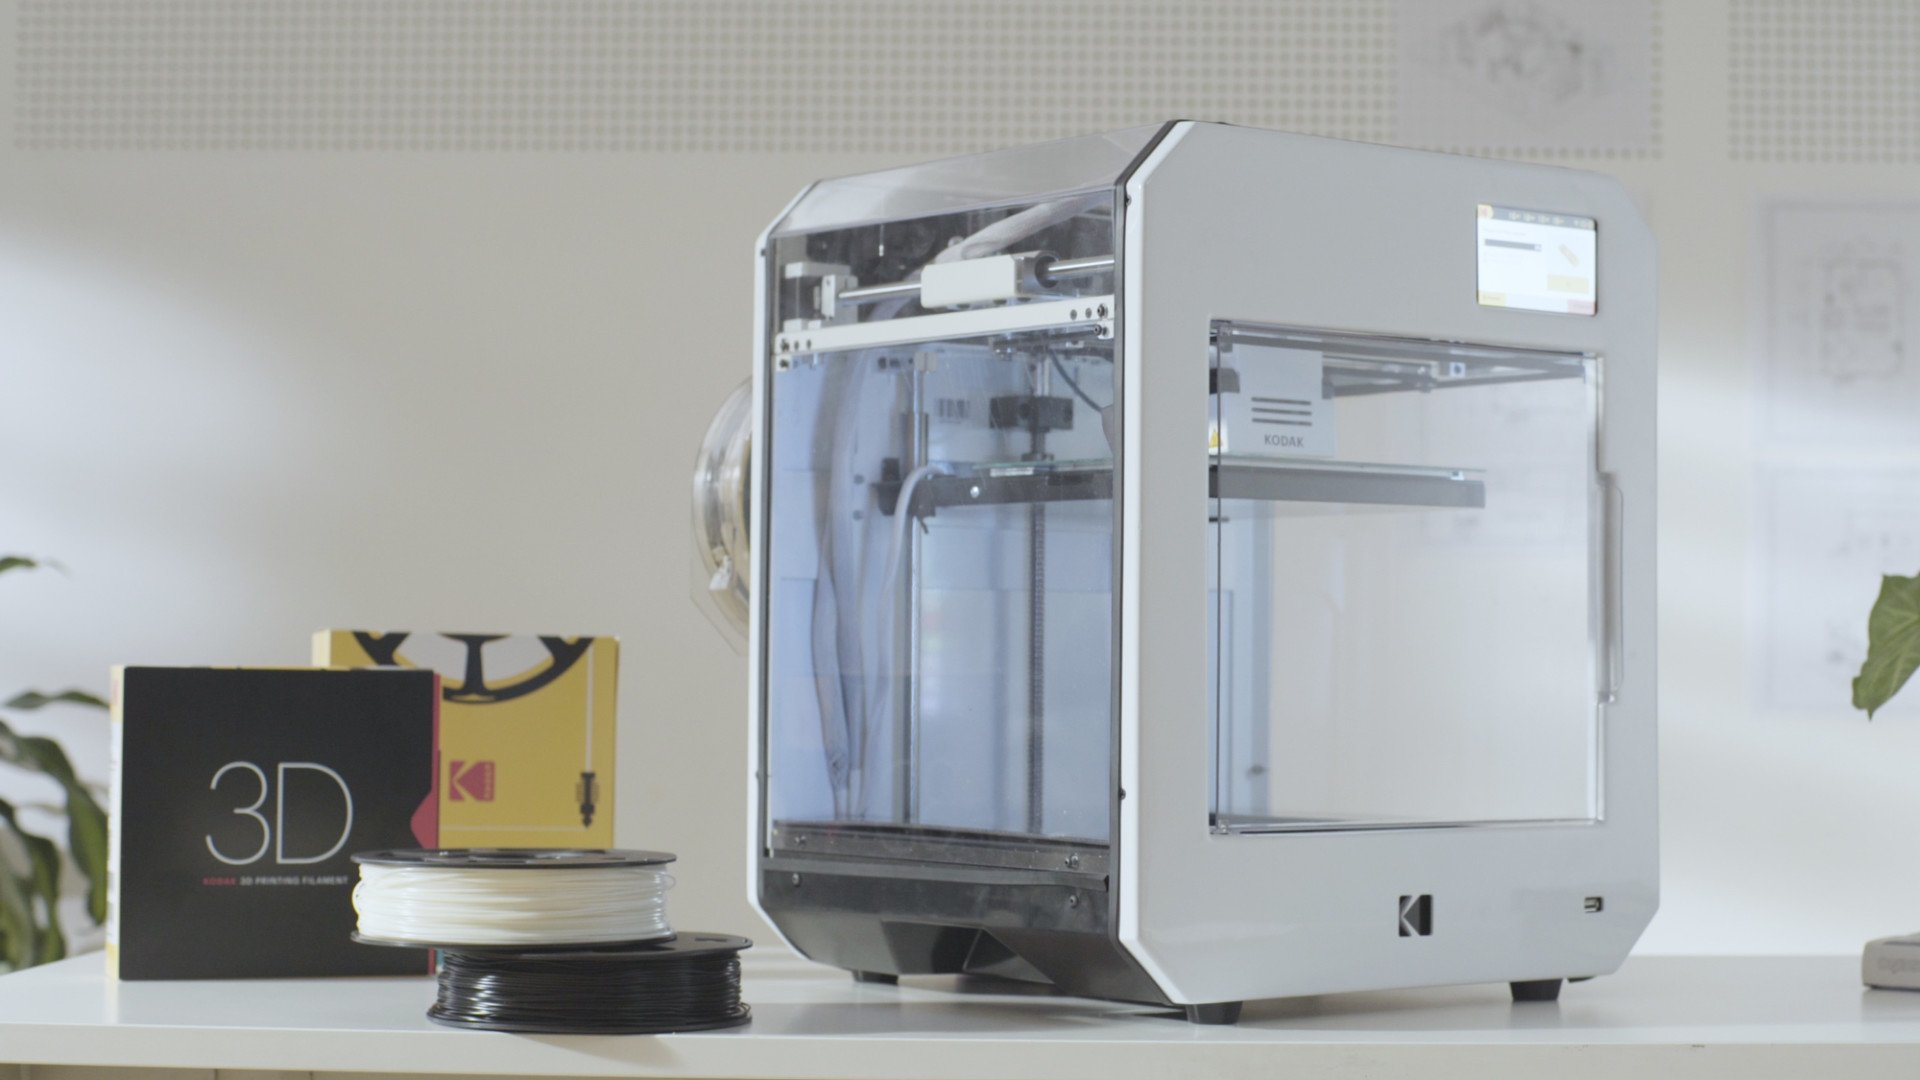 Kodak Portrait 3D Printer Review: 10-Hour Testing | All3DP